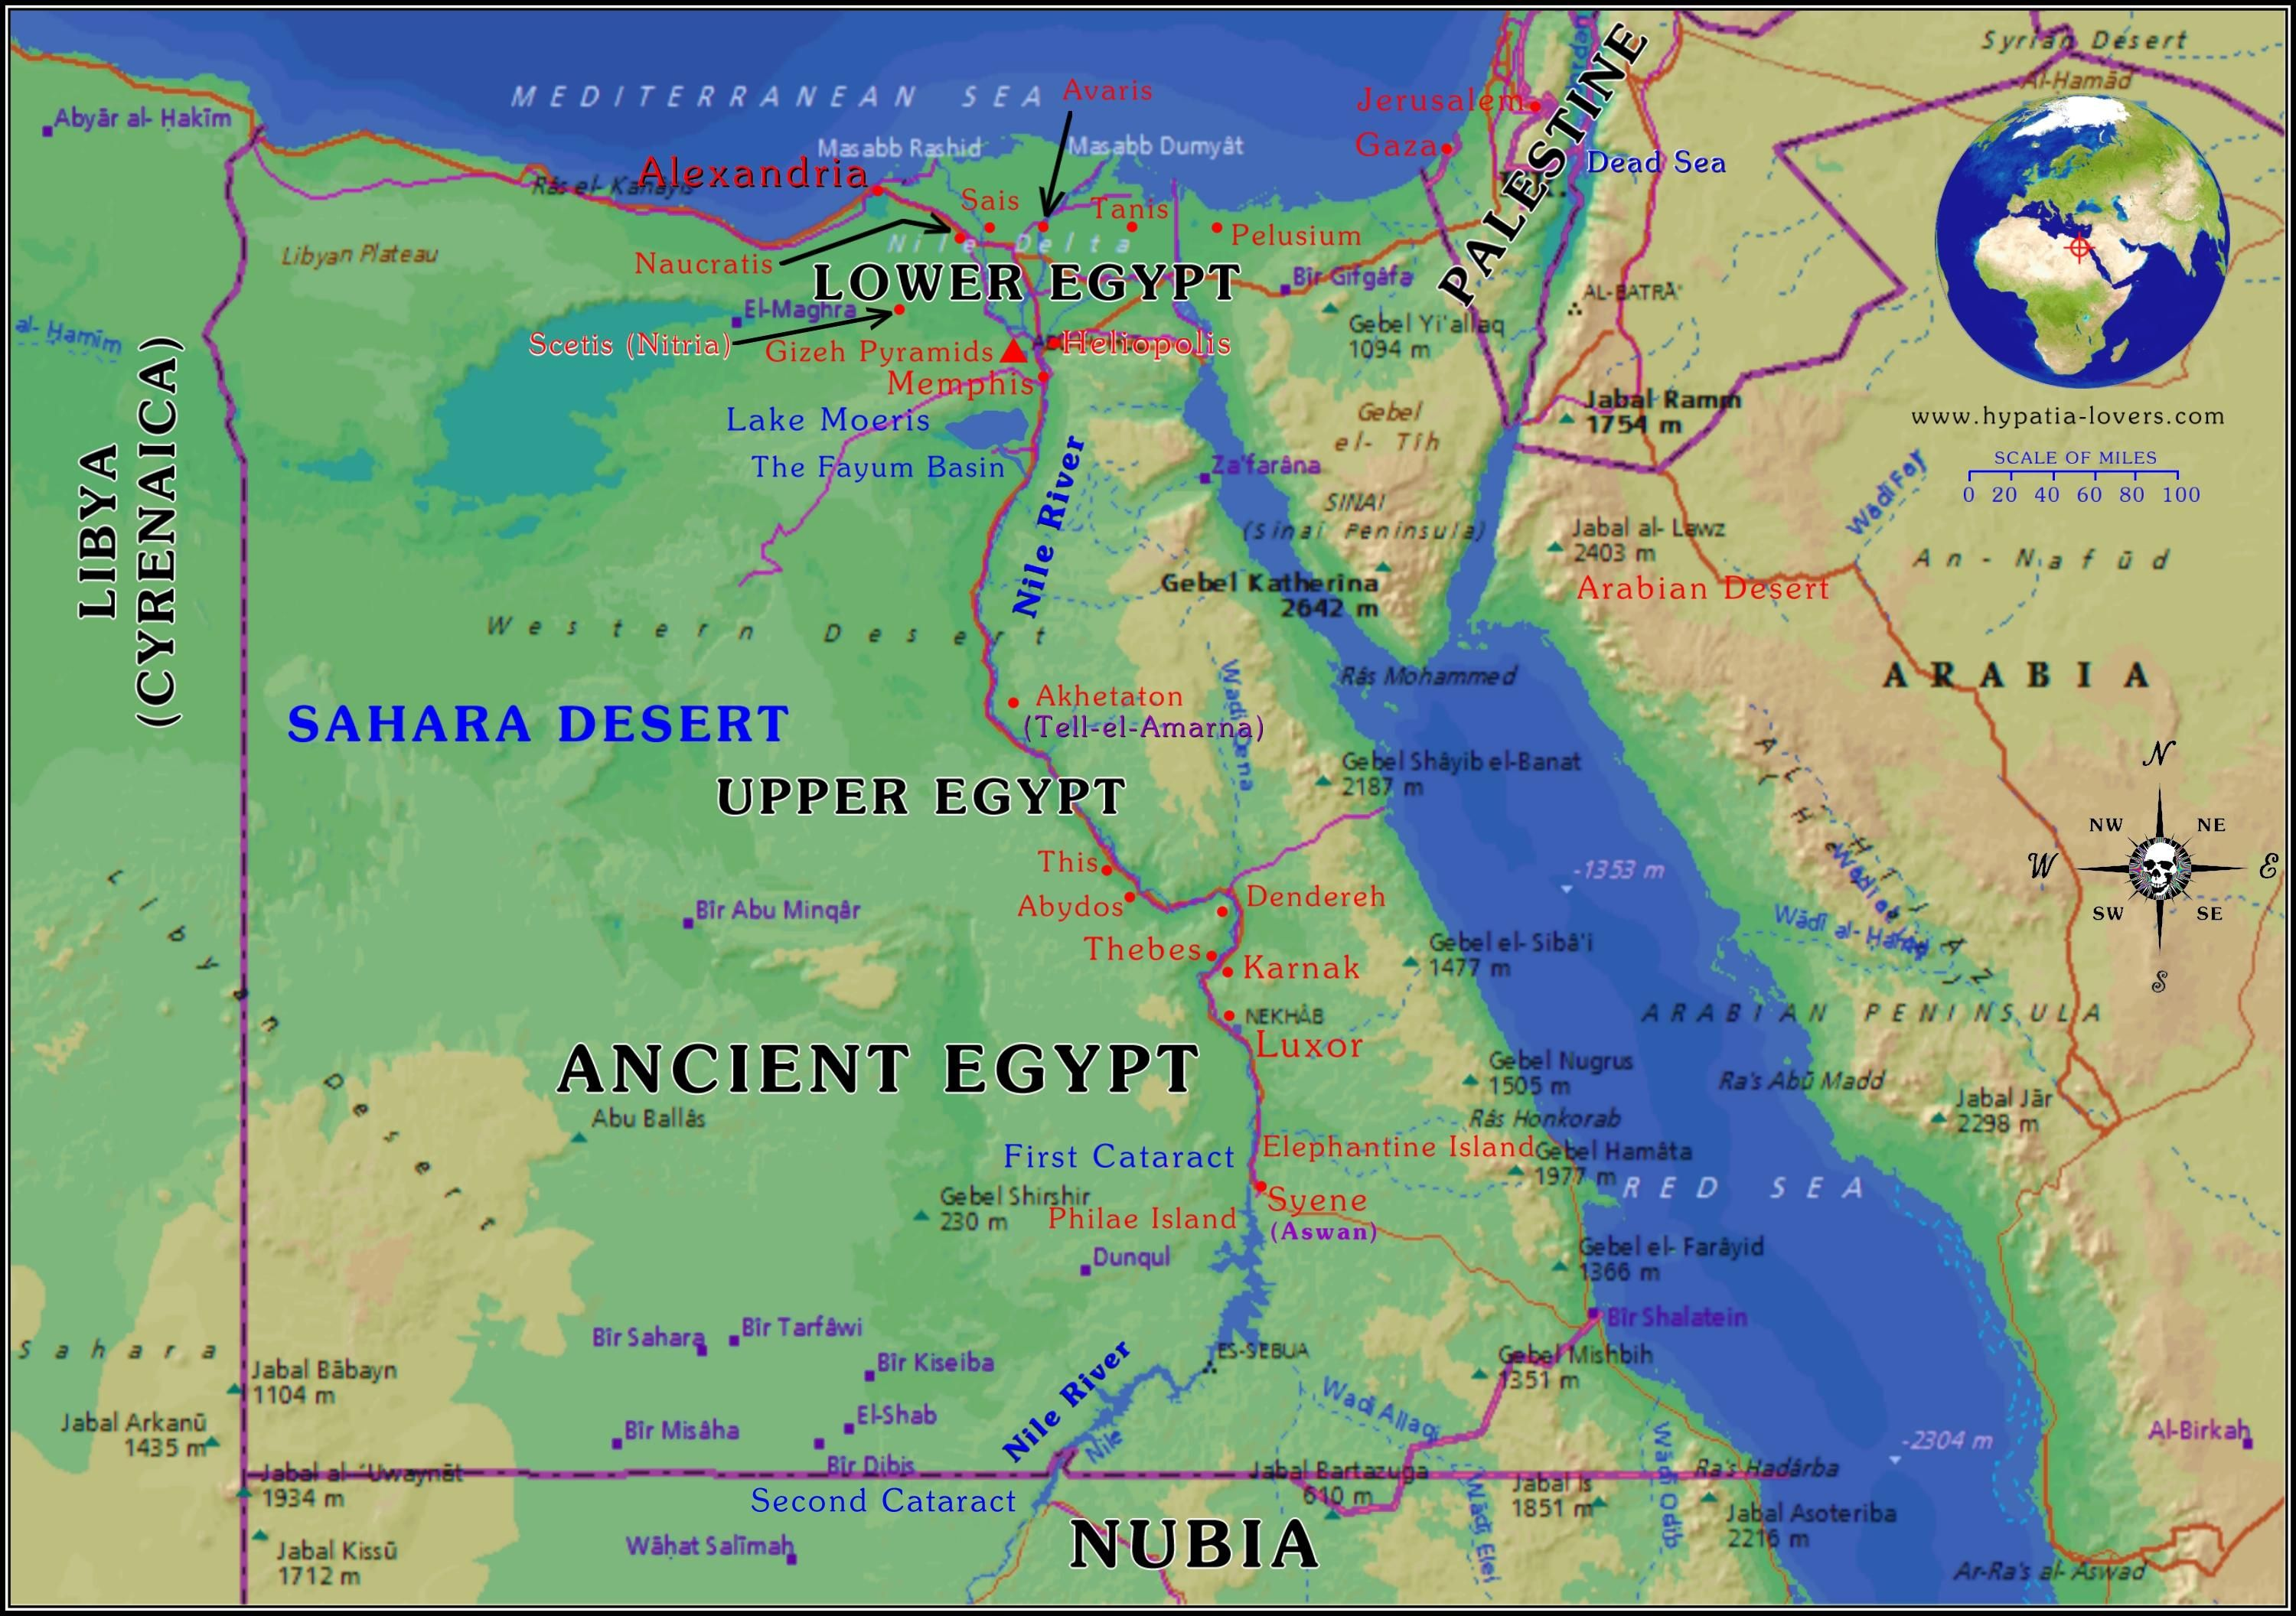 Map of ancient egypt and surrounding area with terrain details map of ancient egypt and surrounding area with terrain details gumiabroncs Image collections